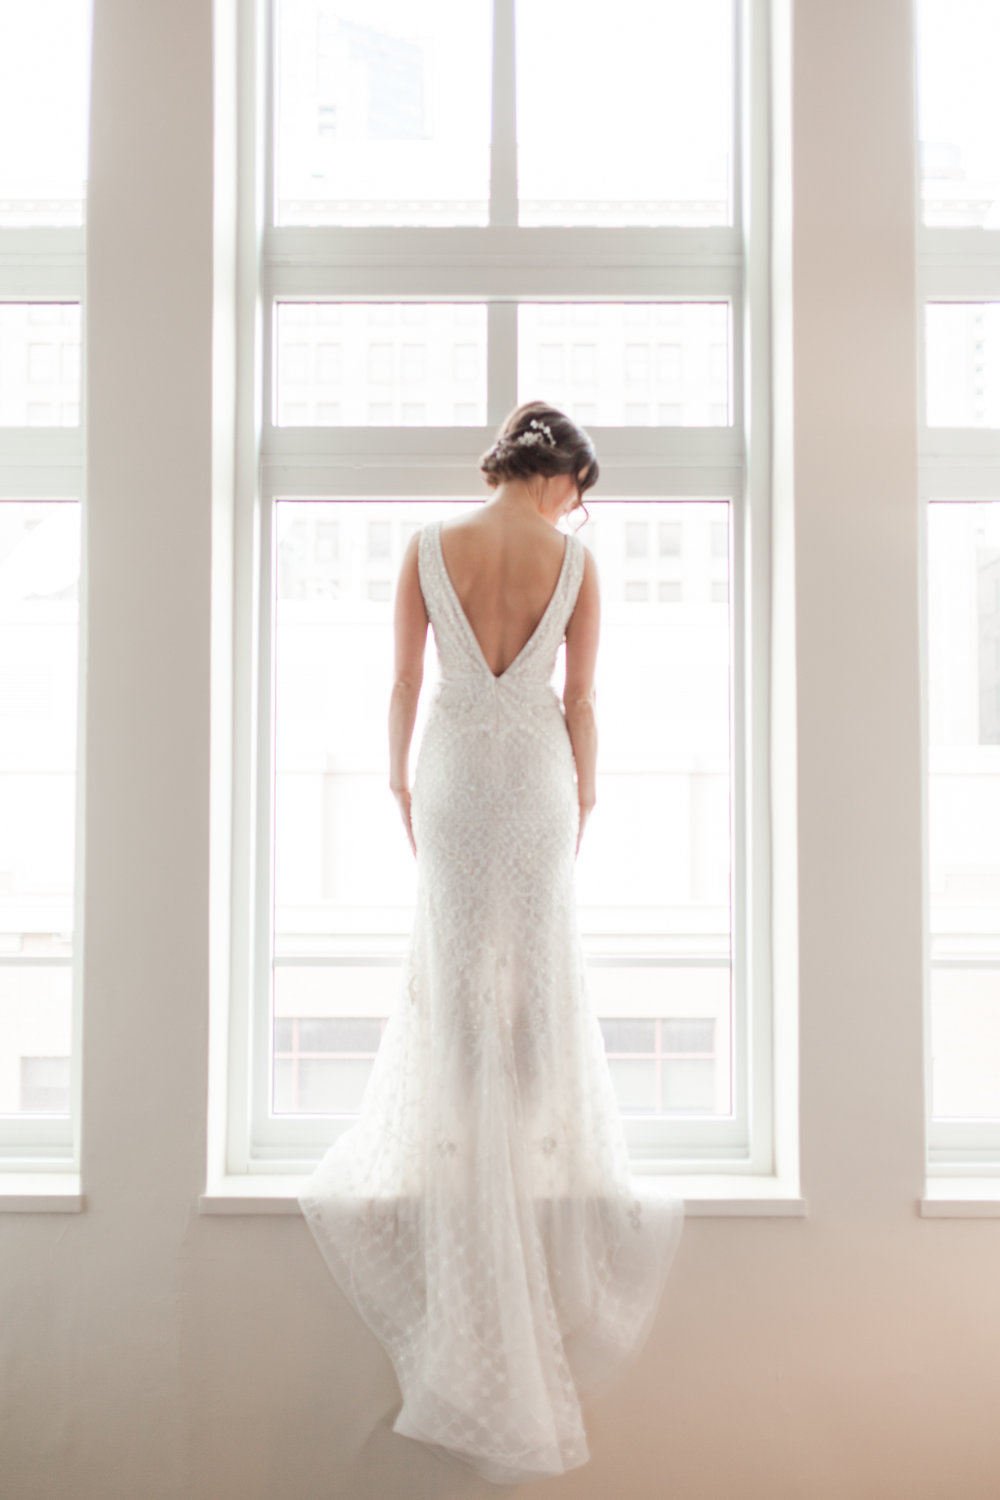 Bride standing in the window | deep v back dress and sheer skirt | Hyatt Place downtown St Paul | Jessa Anderson Photography | Sixpence Events & Planning | wedding blog | winter wedding